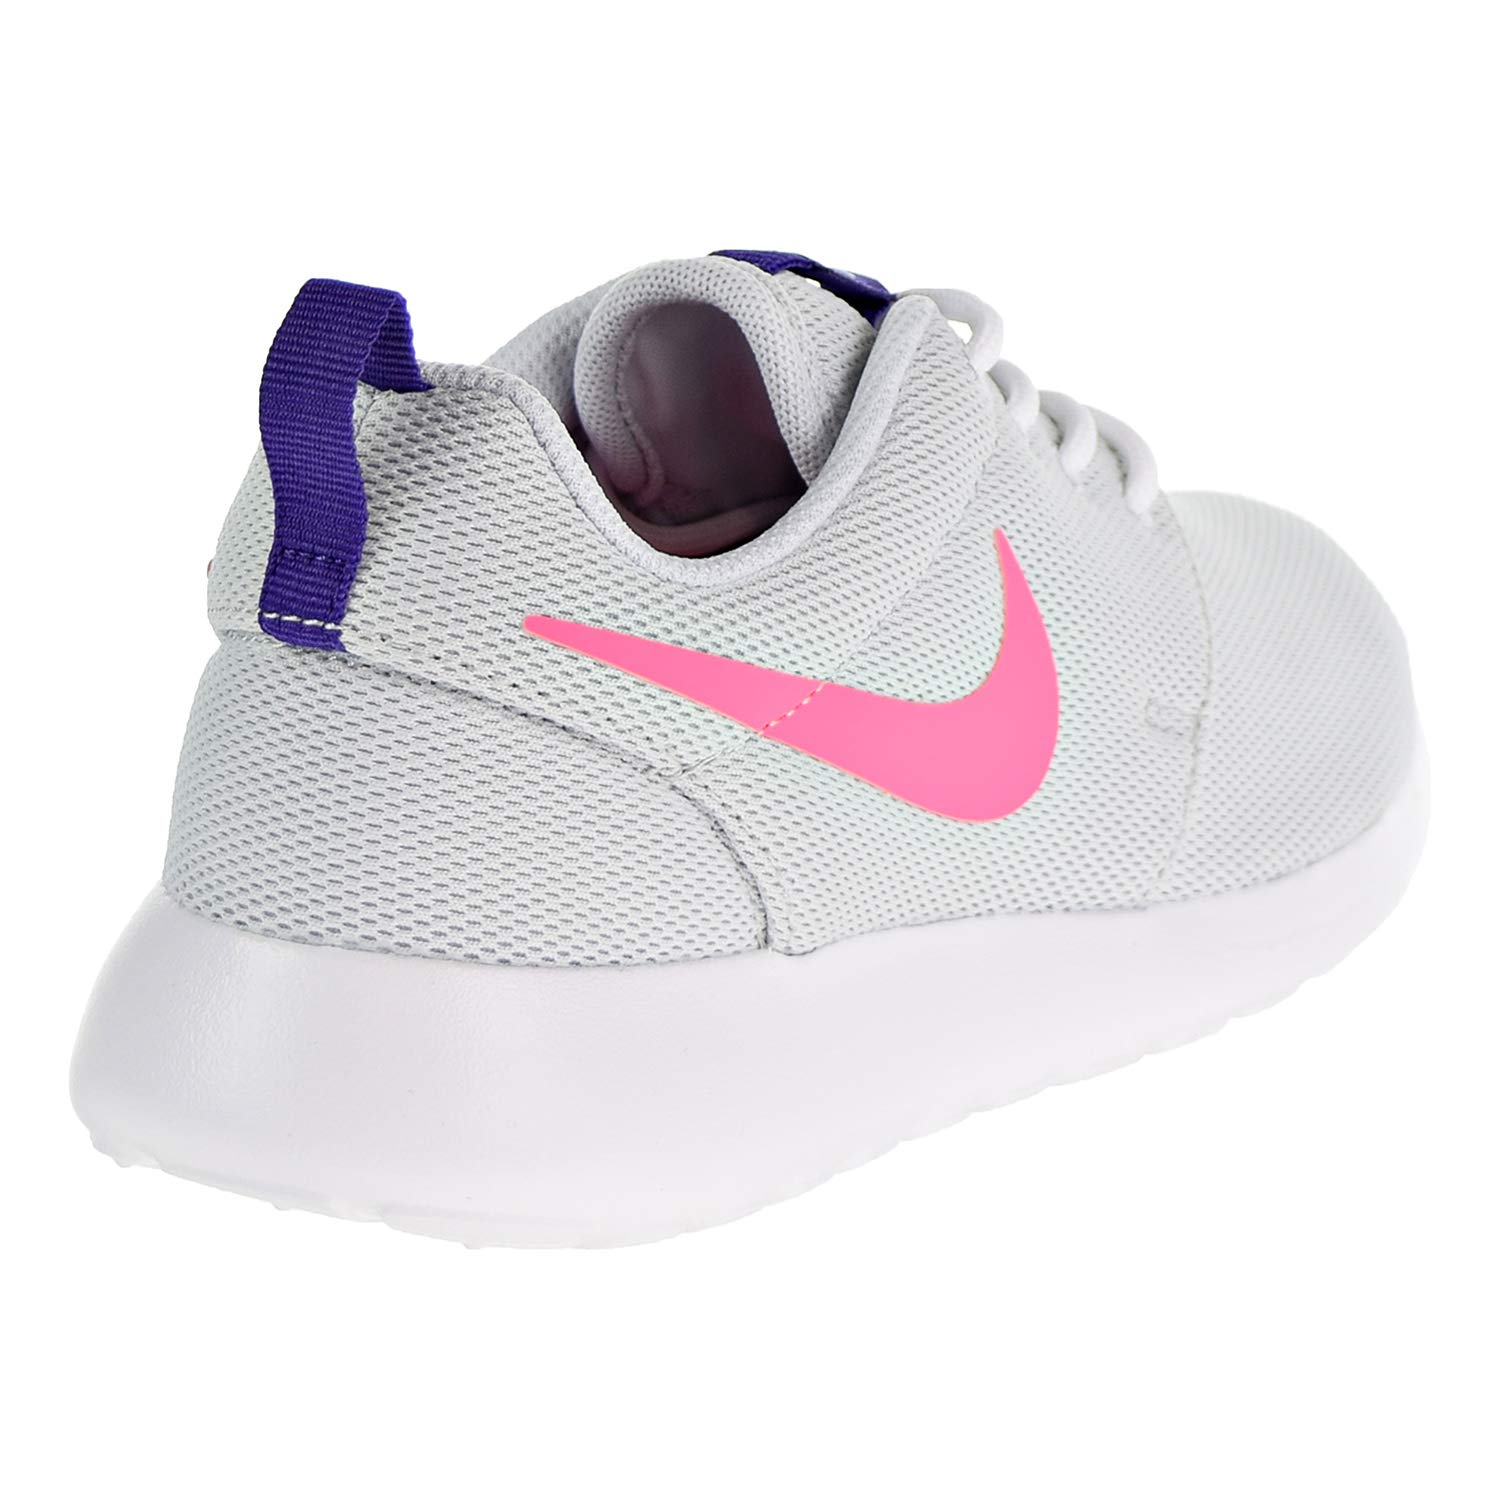 super popular 13783 8ff72 Amazon.com   Nike Women s Roshe One Trainers   Road Running